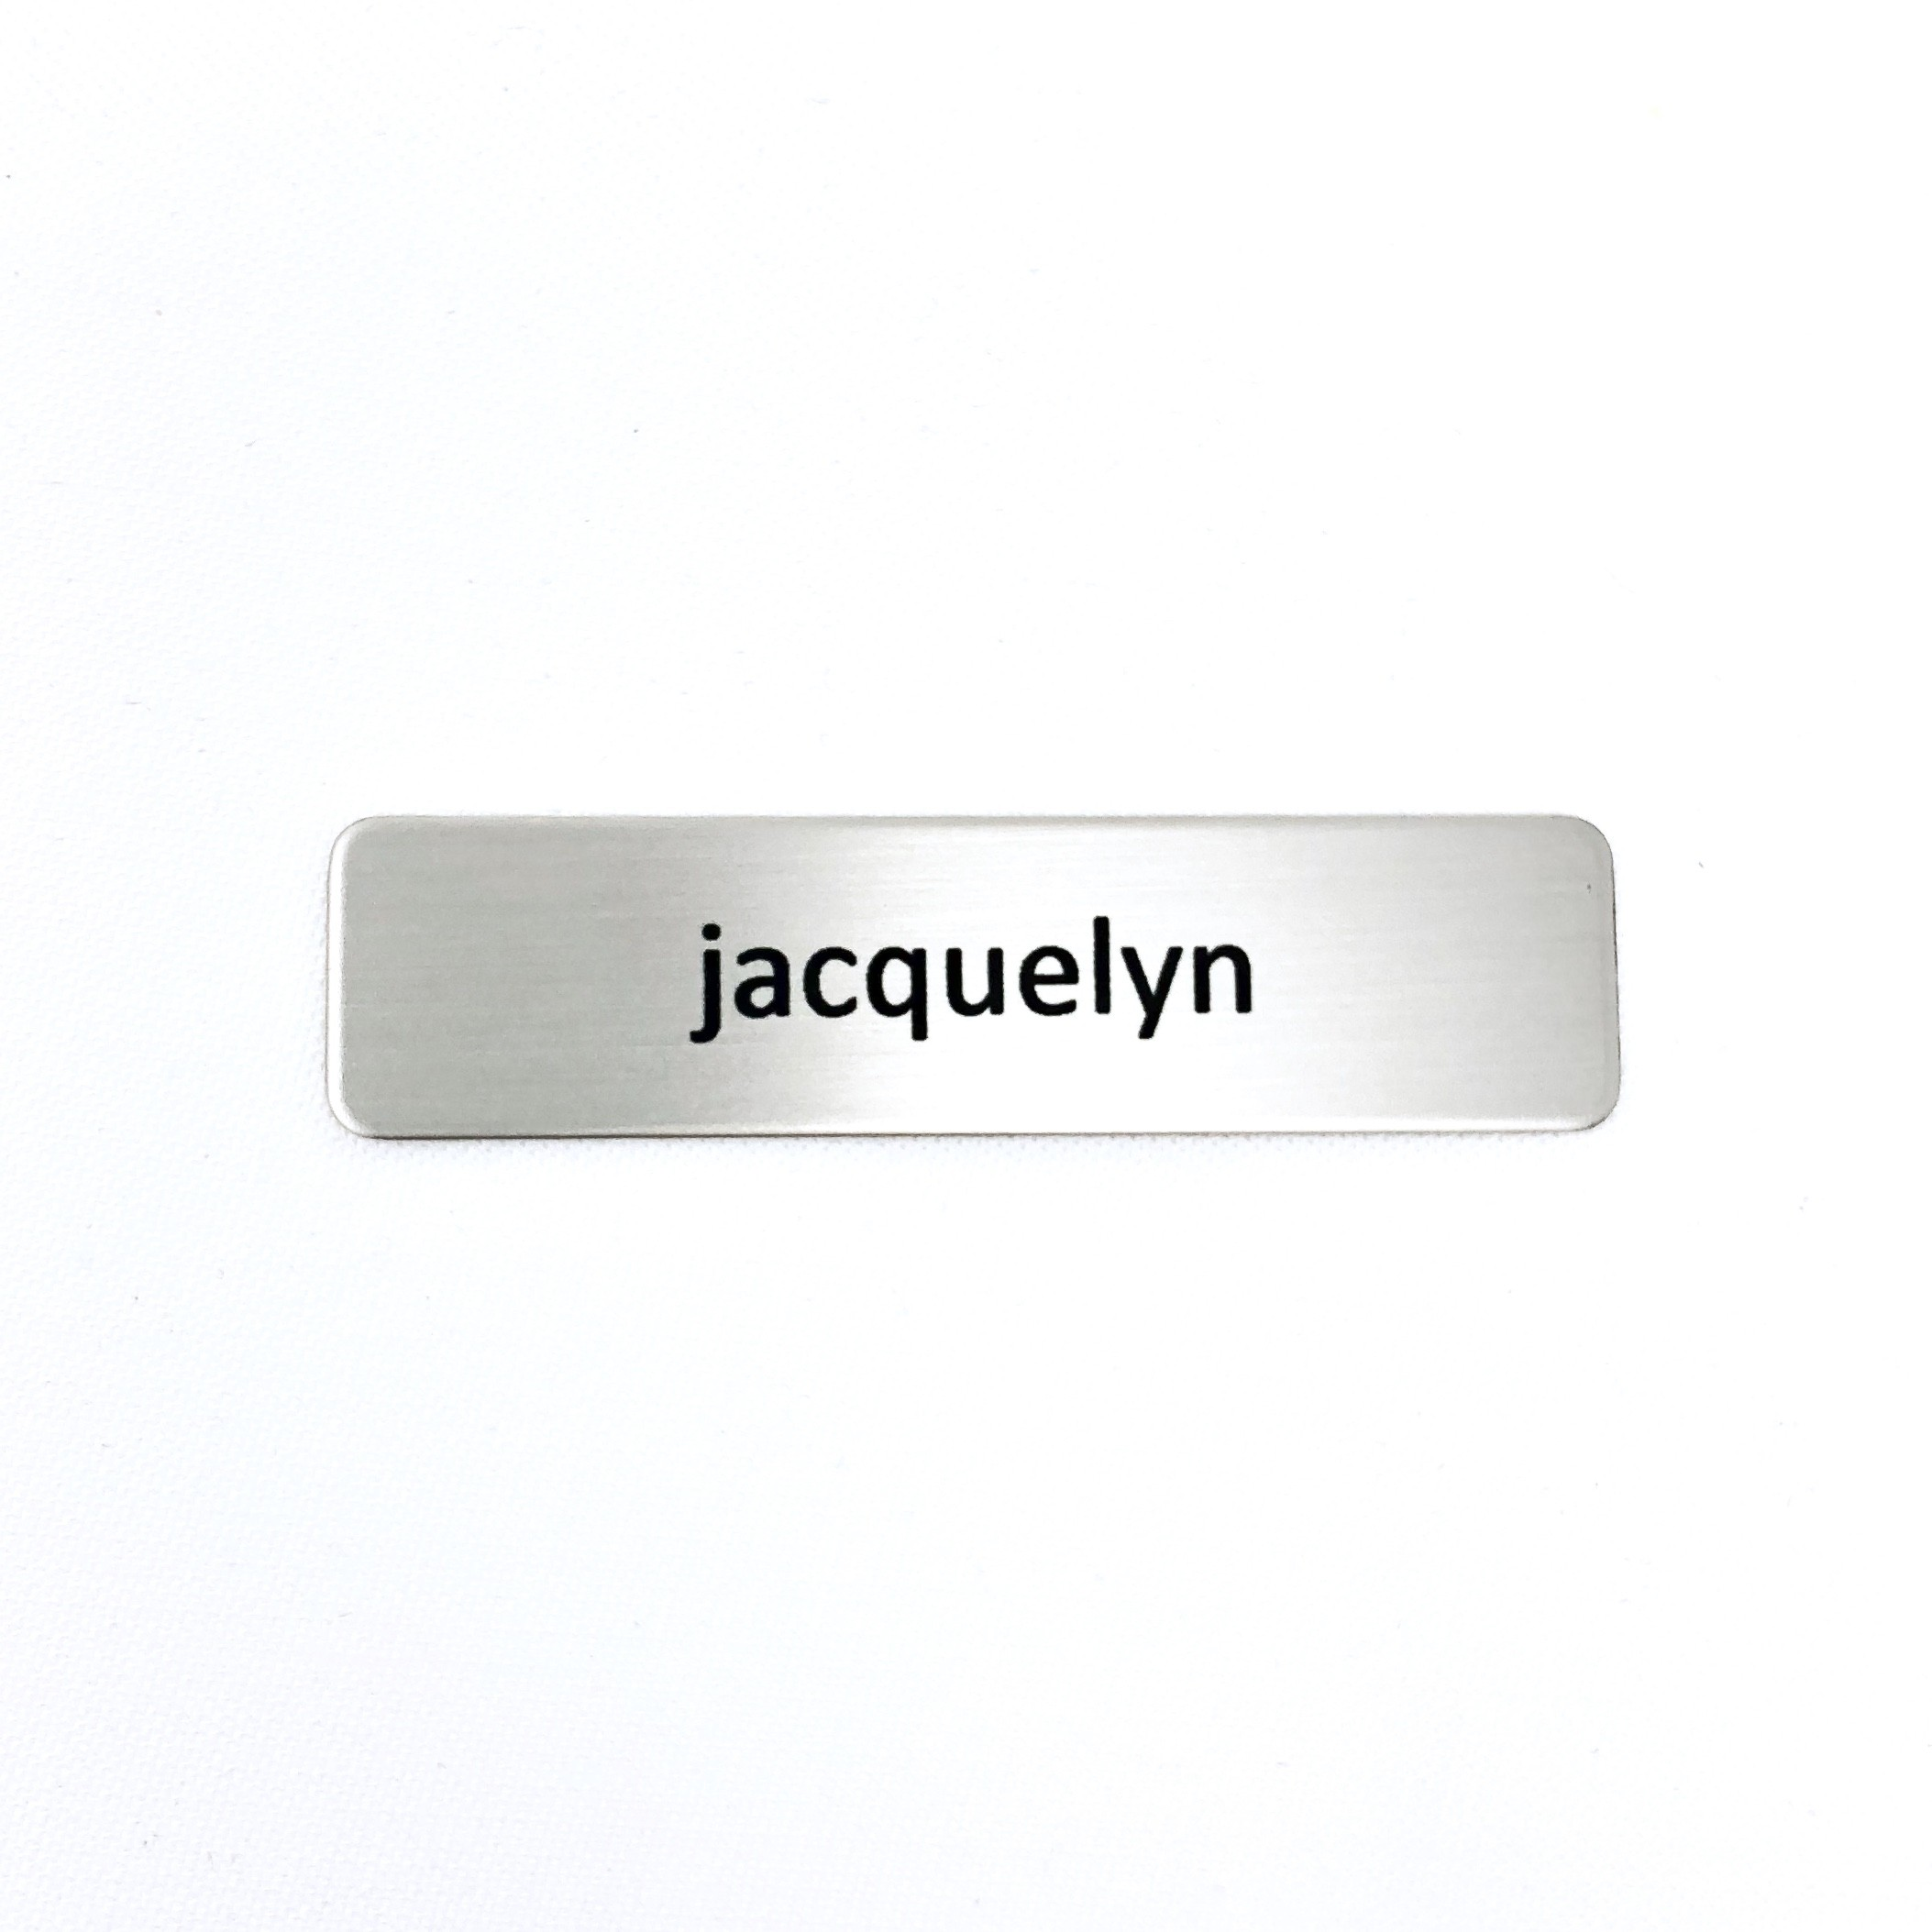 Renaissance Silver Nickel Name Tag